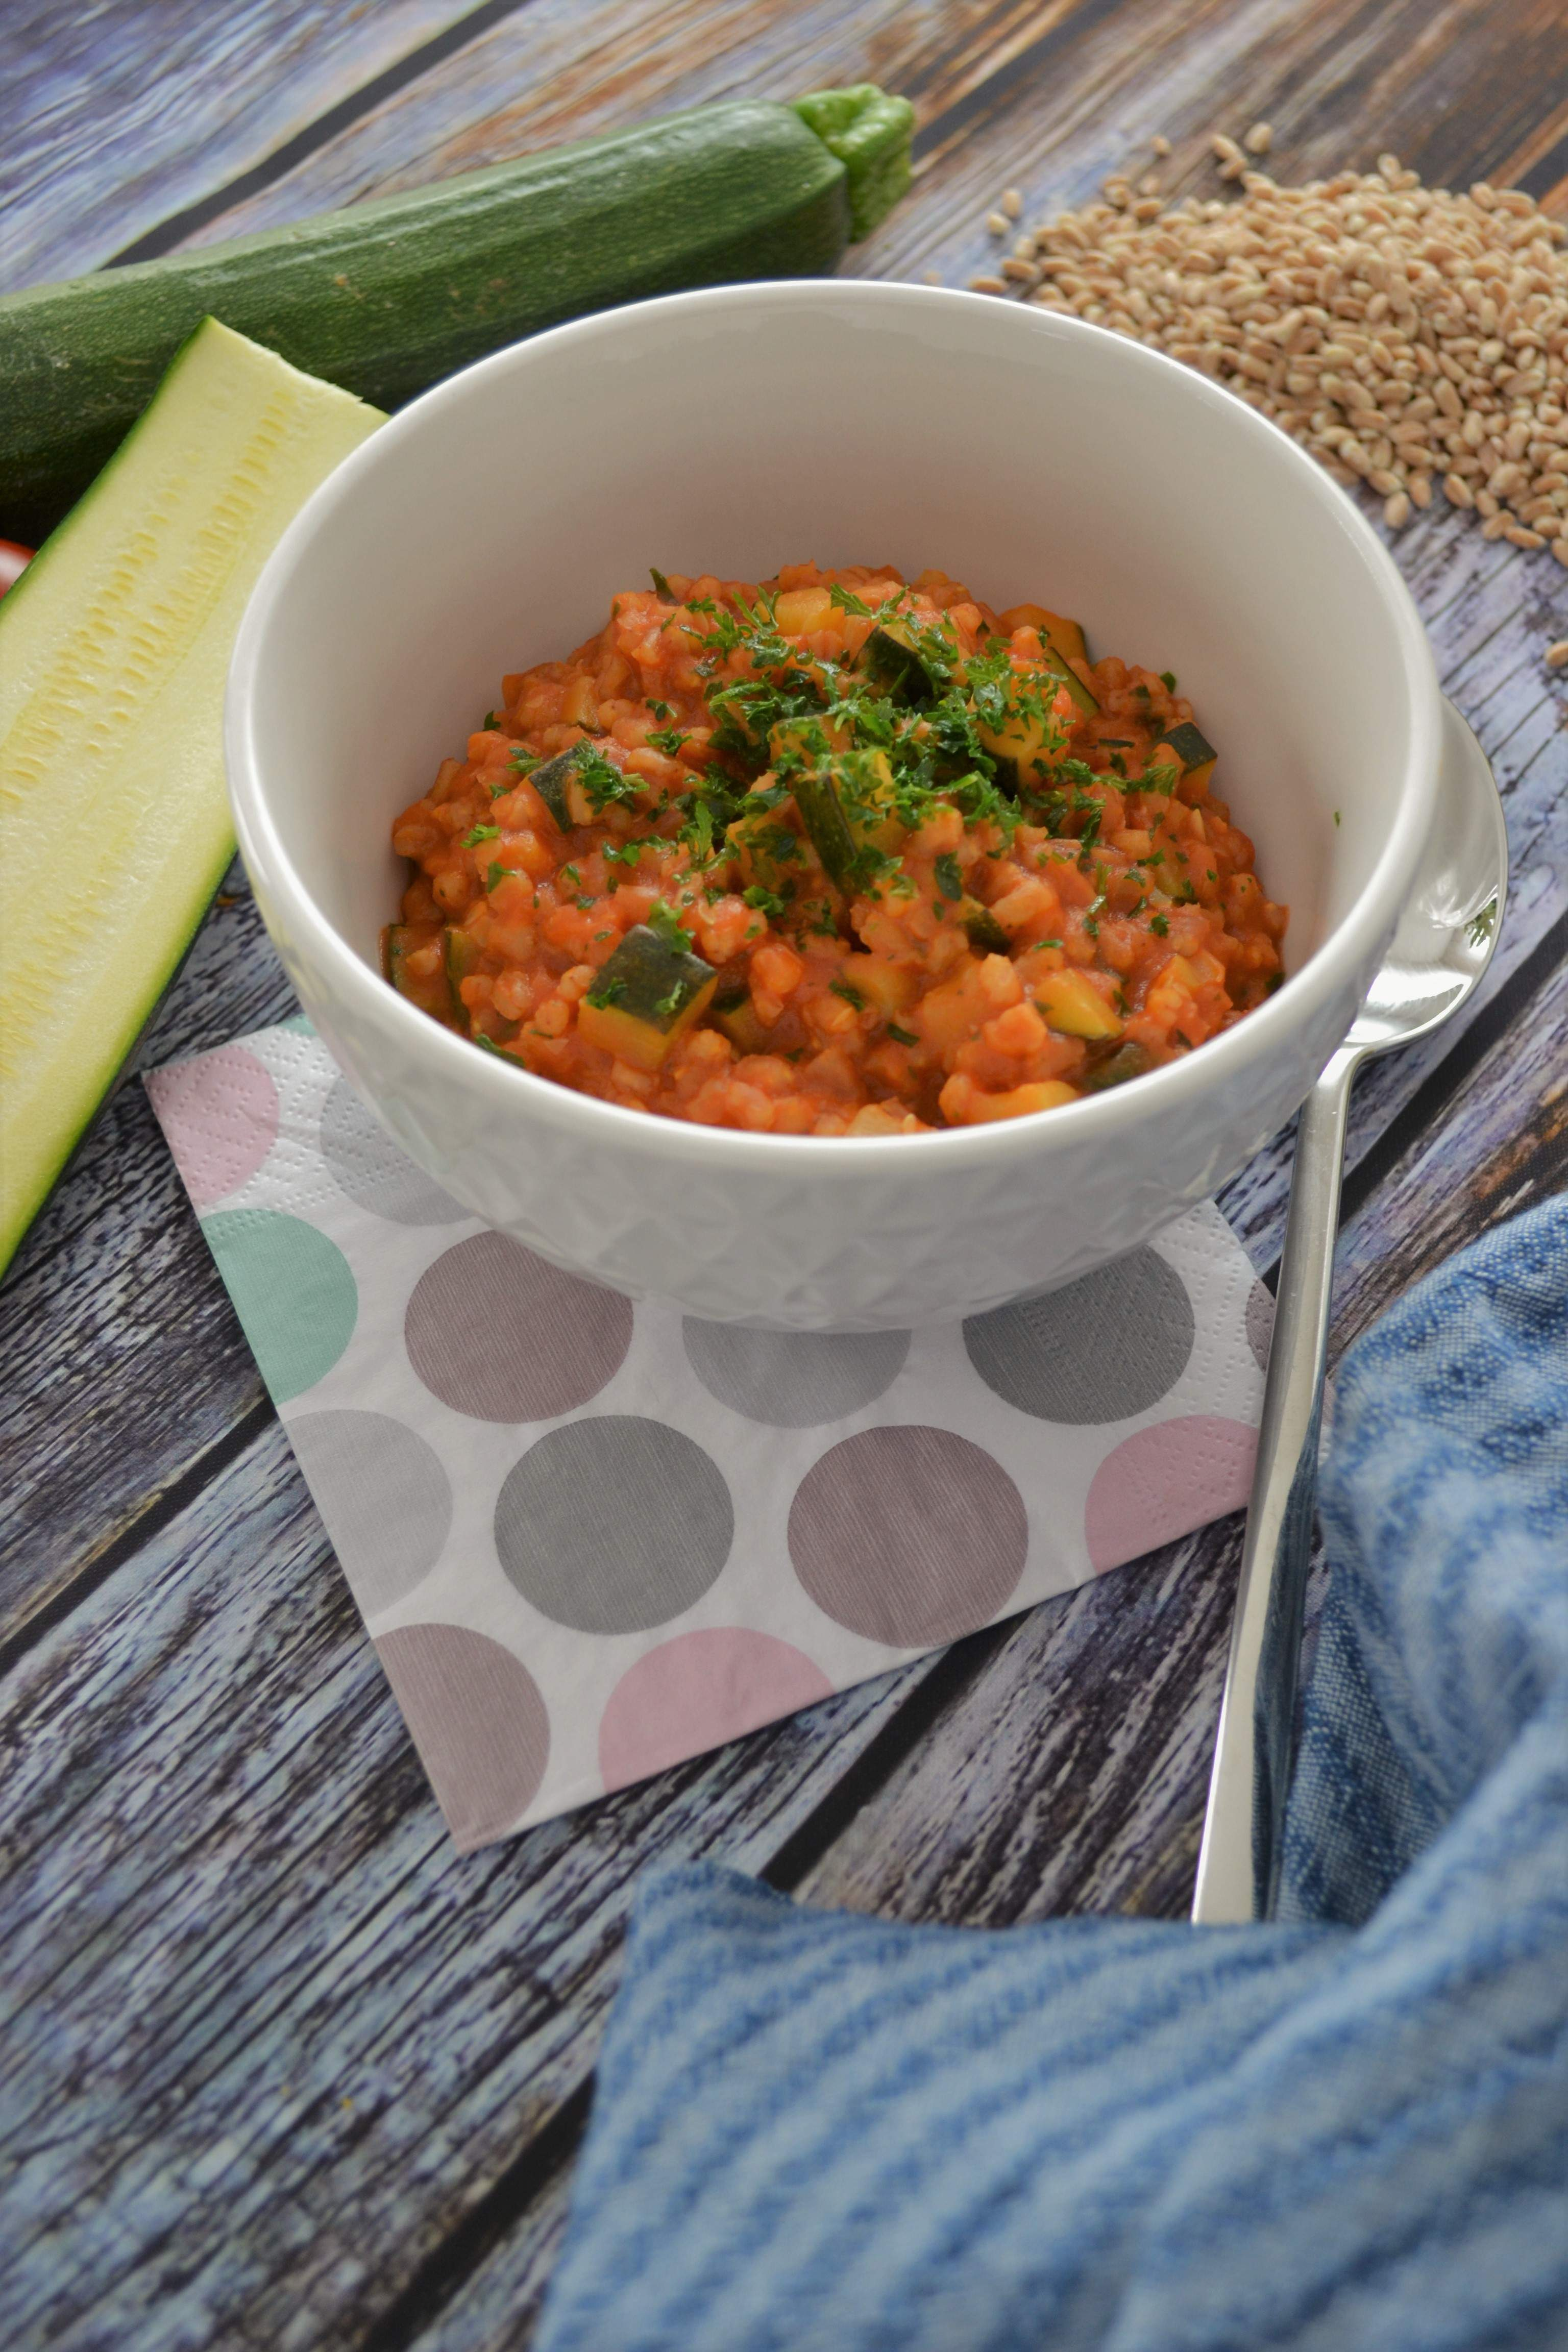 Dinkel-Tomaten-Risotto